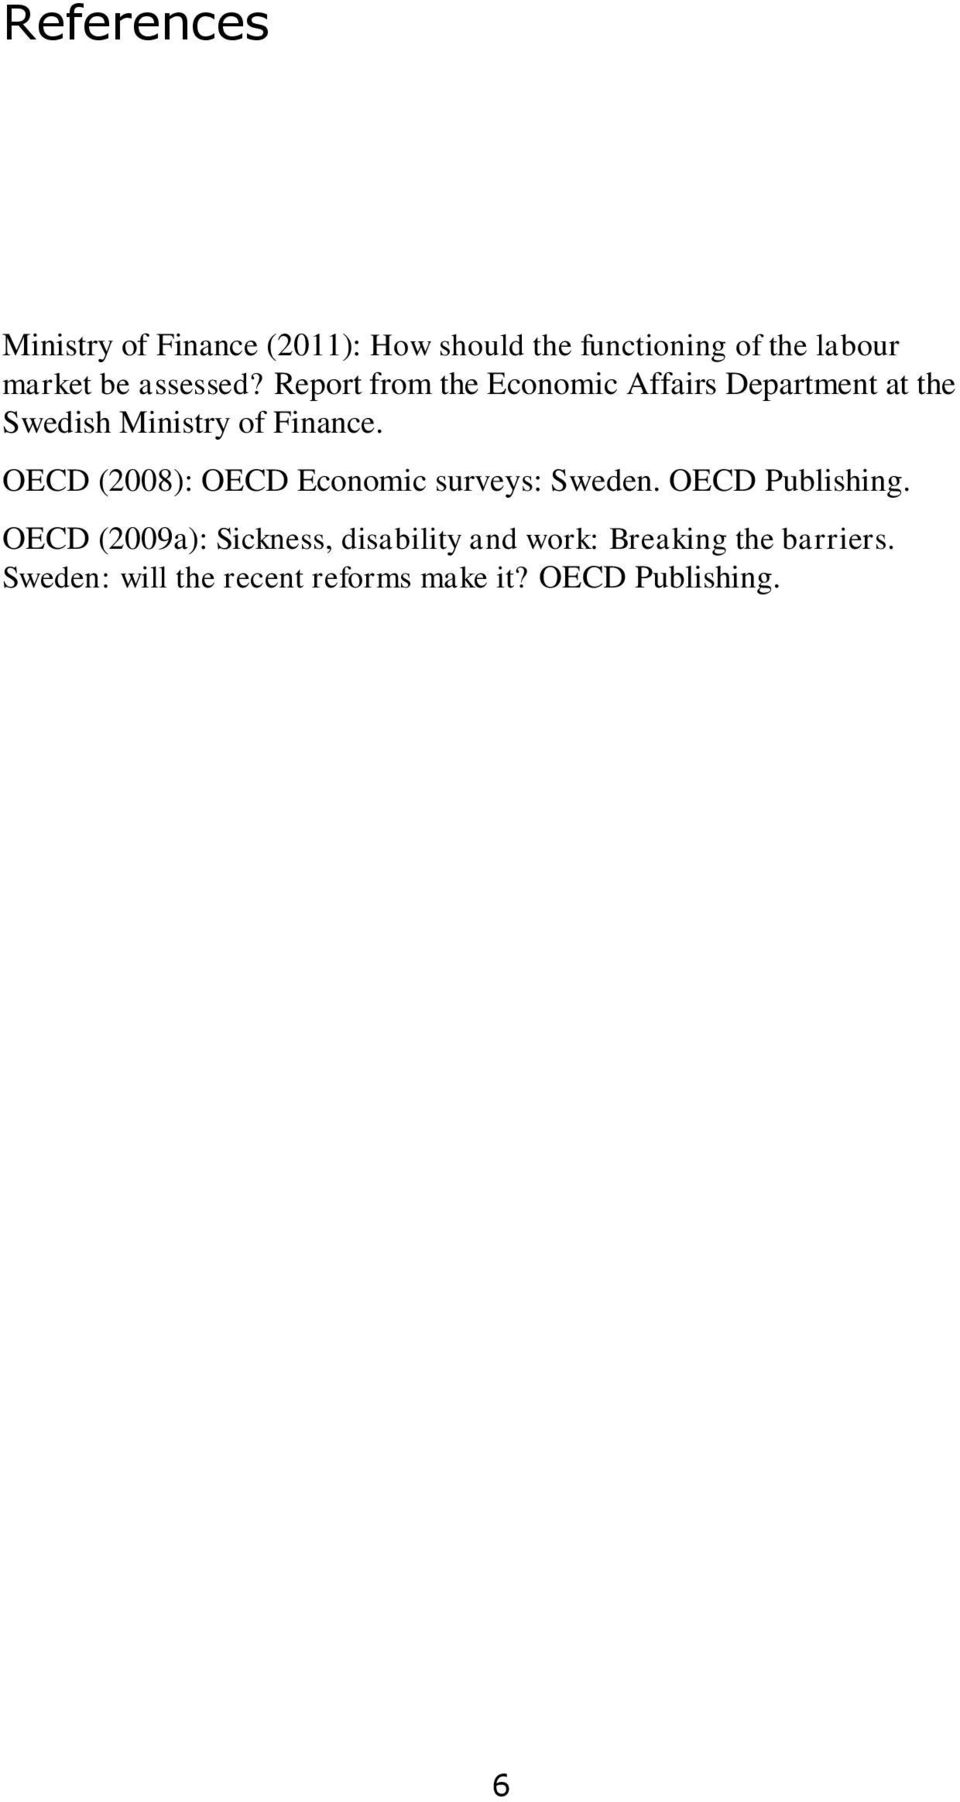 OECD (2008): OECD Economic surveys: Sweden. OECD Publishing.